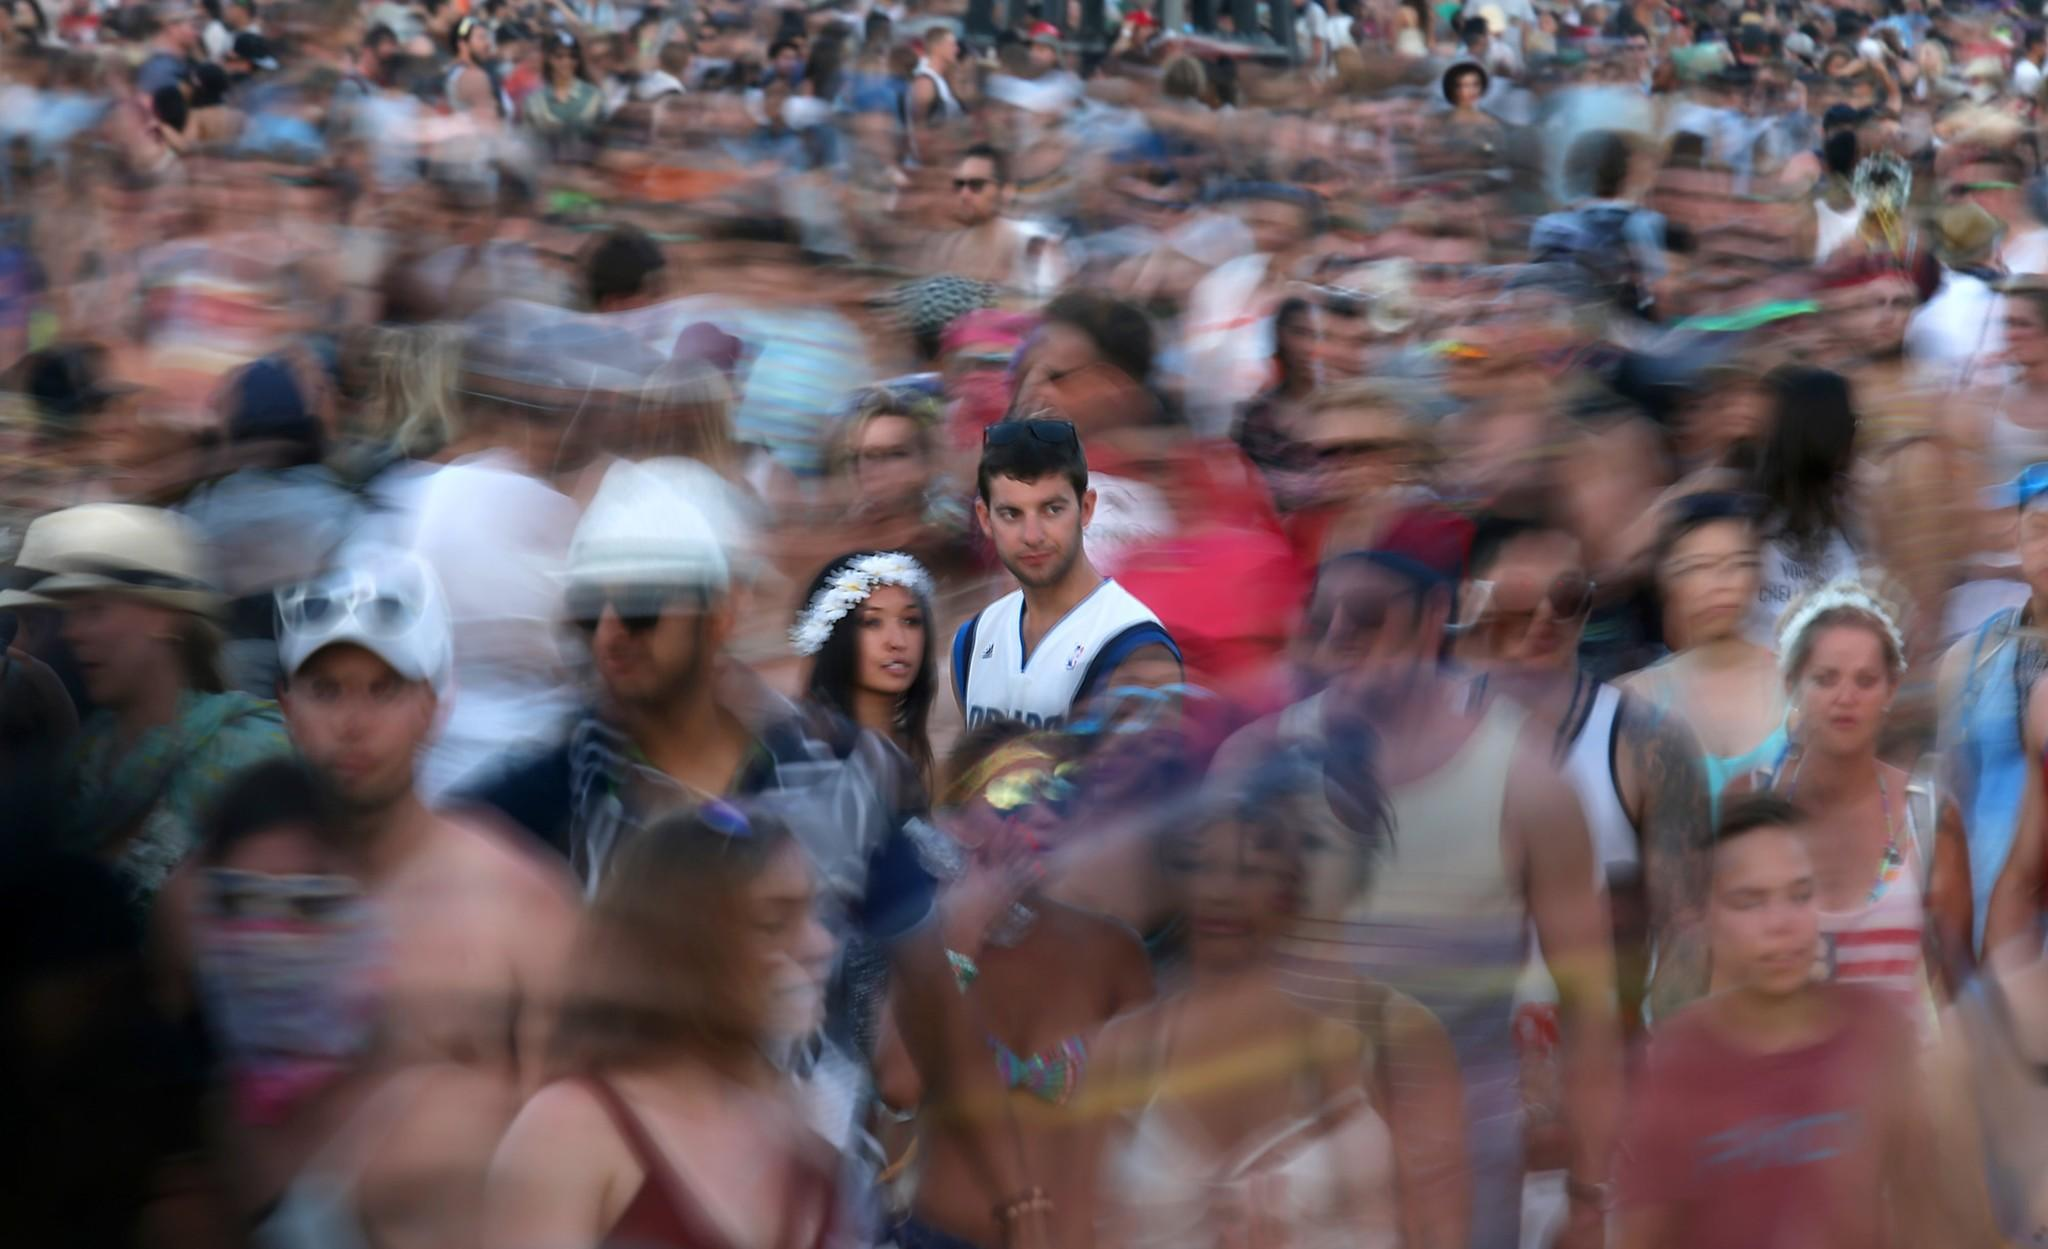 Shara Soo, 27, left, and friend Tyler Kiefer, 23, of San Francisco, stand in a sea of moving people on the first weekend of the 2014 Coachella Music and Arts Festival.